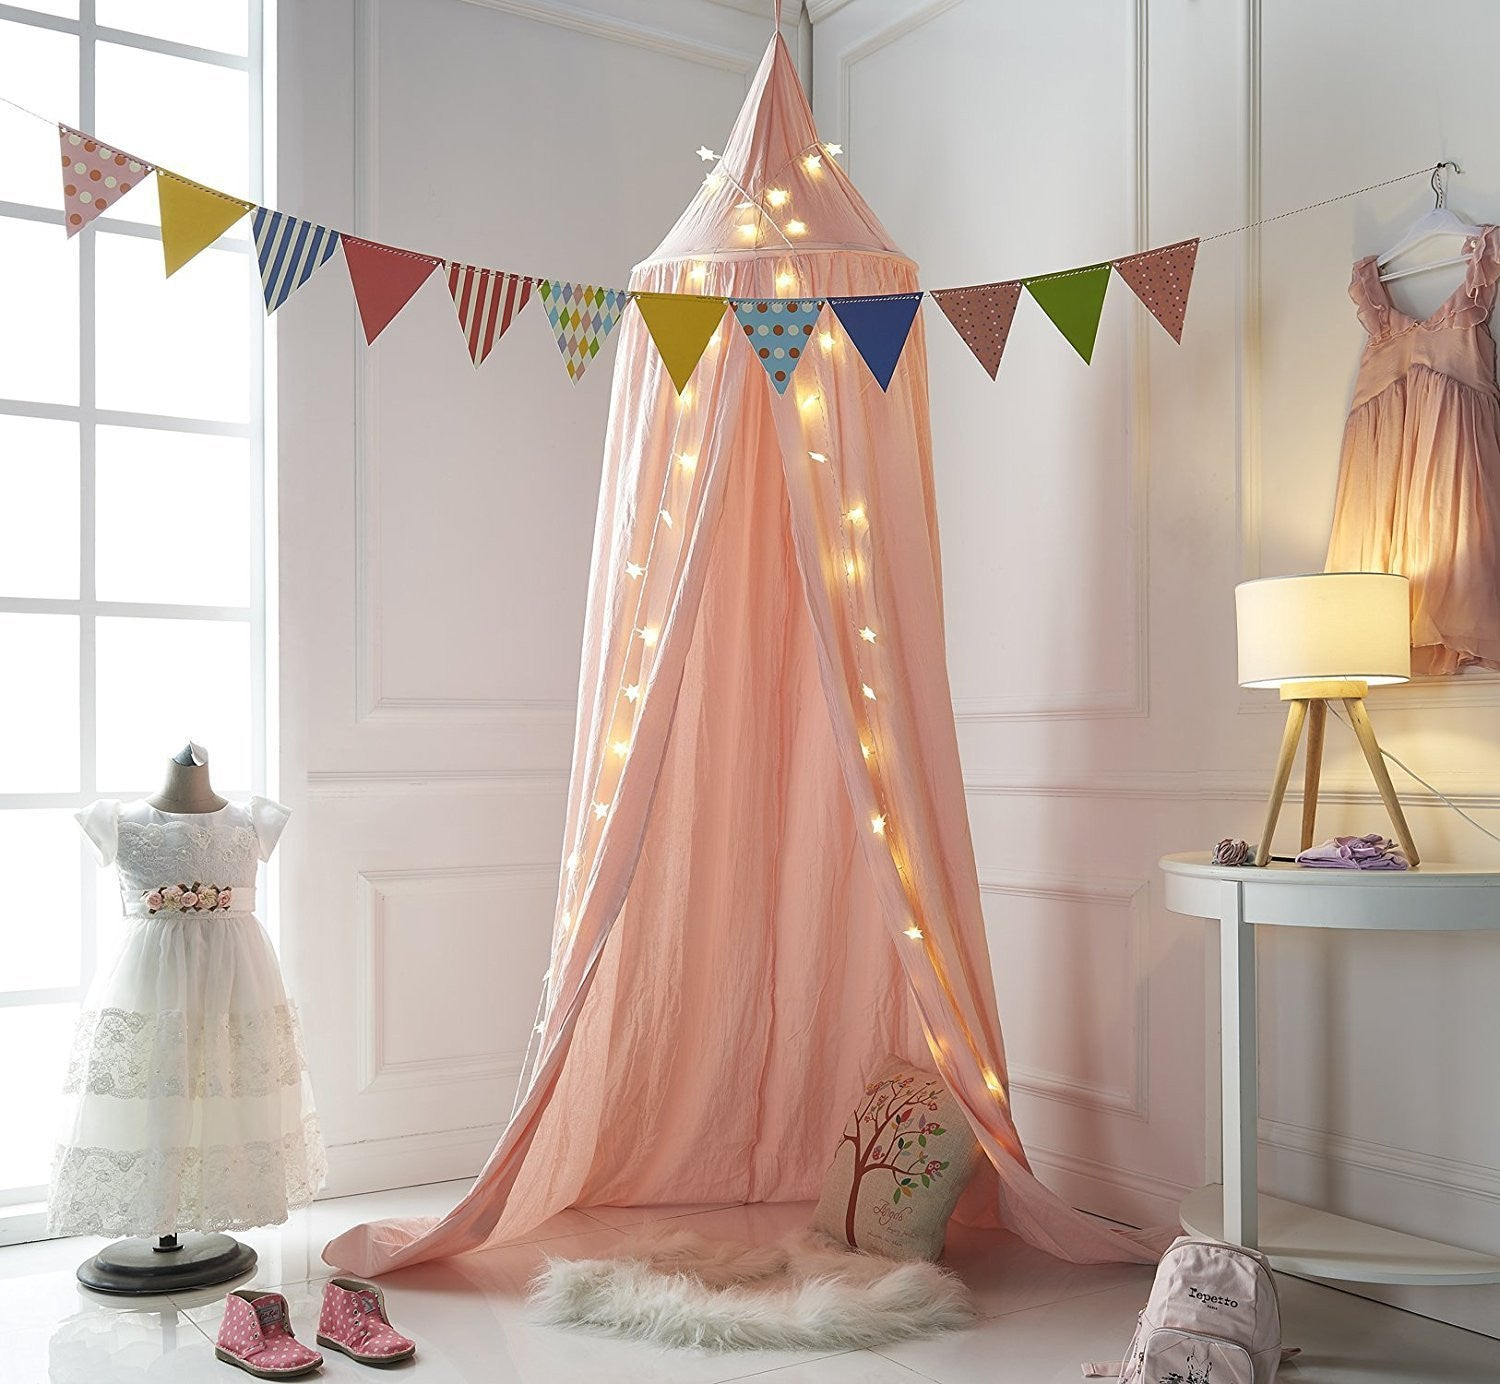 Good ... Dome Princess Bed Canopy Bed Curtain Mosquito Net For Children Room  Decoration,(Grey) ...